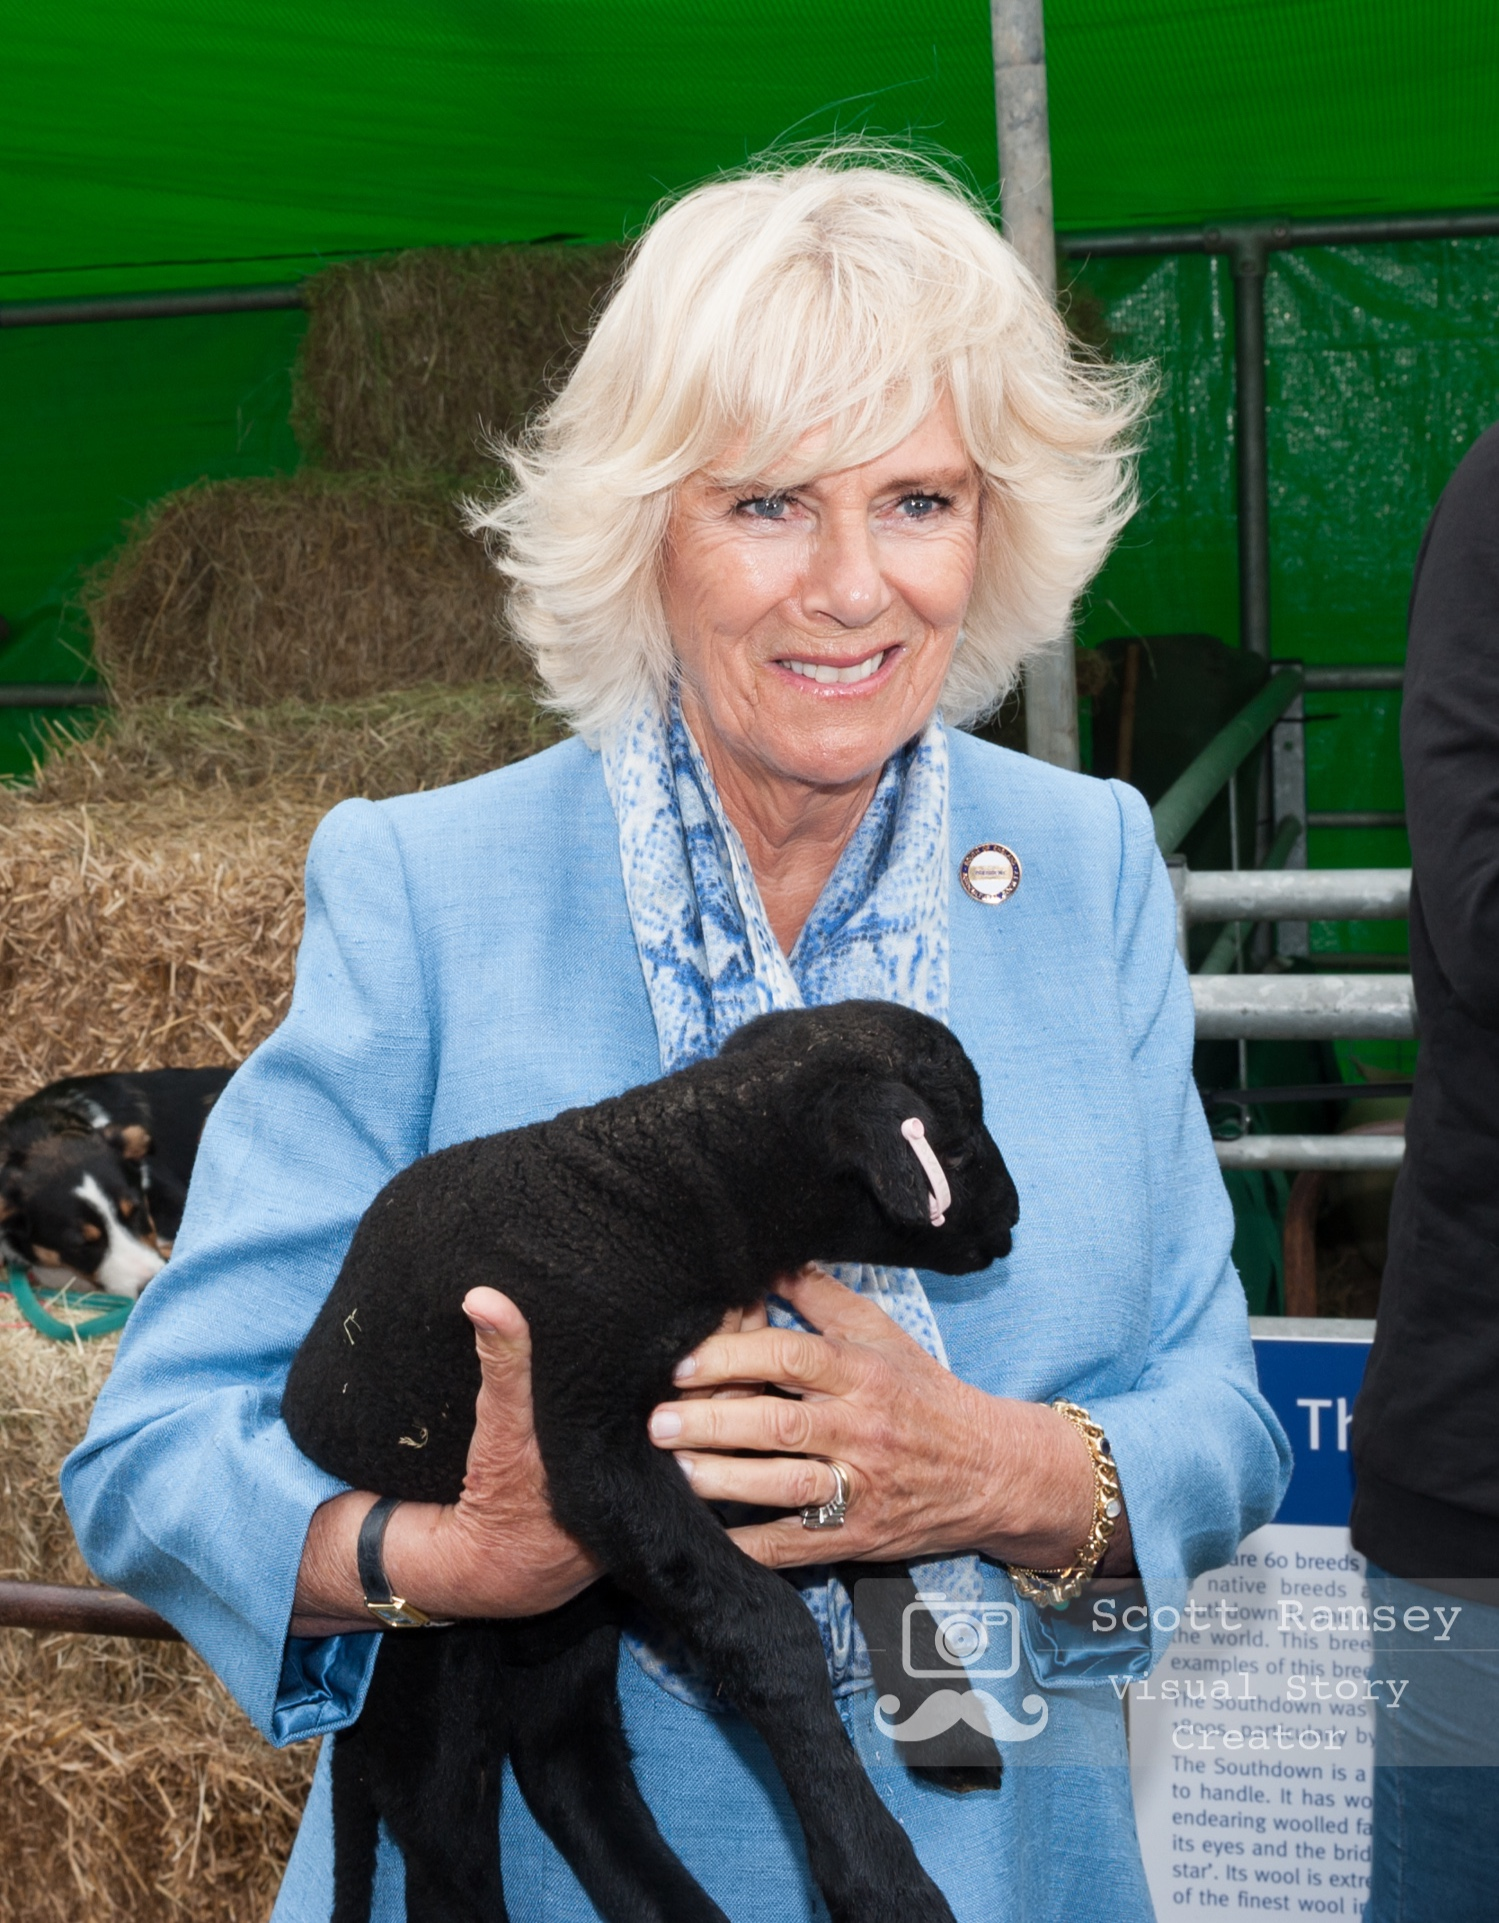 Brighton Photographer Scott Ramsey on assignment at the South Of England Show. HRH, The Duchess Of Cornwall, holds a newborn lamb during a visit to the South Of England Show. Photo © Scott Ramsey.